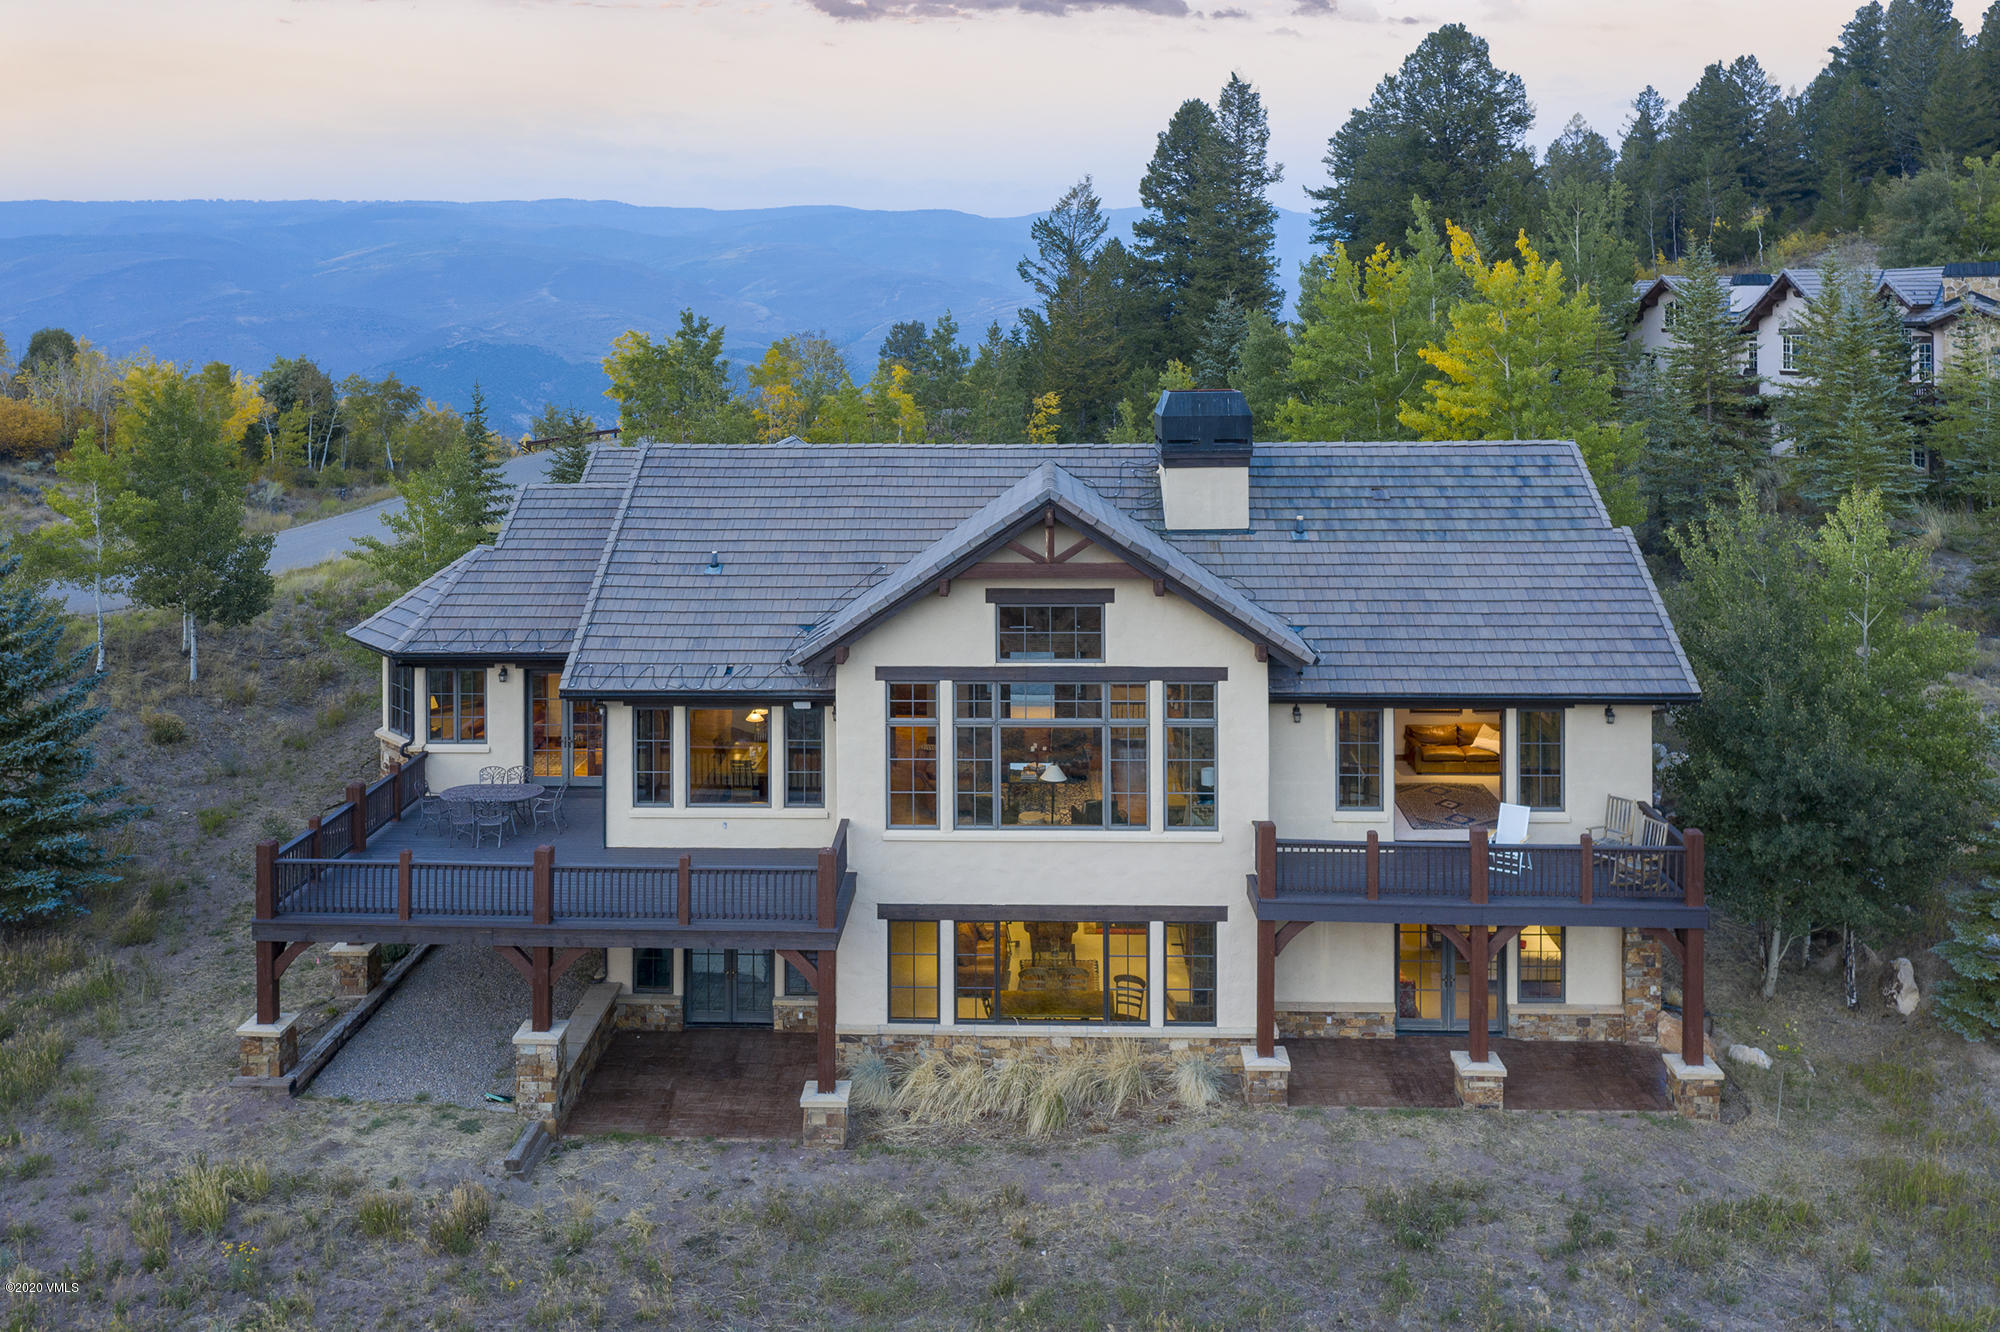 Perfect Cordillera home for those wanting main floor living with a gracious layout including primary bedroom and bath, laundry room, side entry with ski and boot storage, 3-car garage plus sun room/study and breakfast nook.  Granite kitchen with custom cabinetry is a chef's dream.  Dramatic views to the west from every room add to the spacious feel of high ceilings and rustic beaming.  Lower floor for the rest of the group boasts 4 additional bedrooms, 2nd laundry room a wine room and wet bar.  Private setting with numerous outdoor spaces for year round enjoyment.